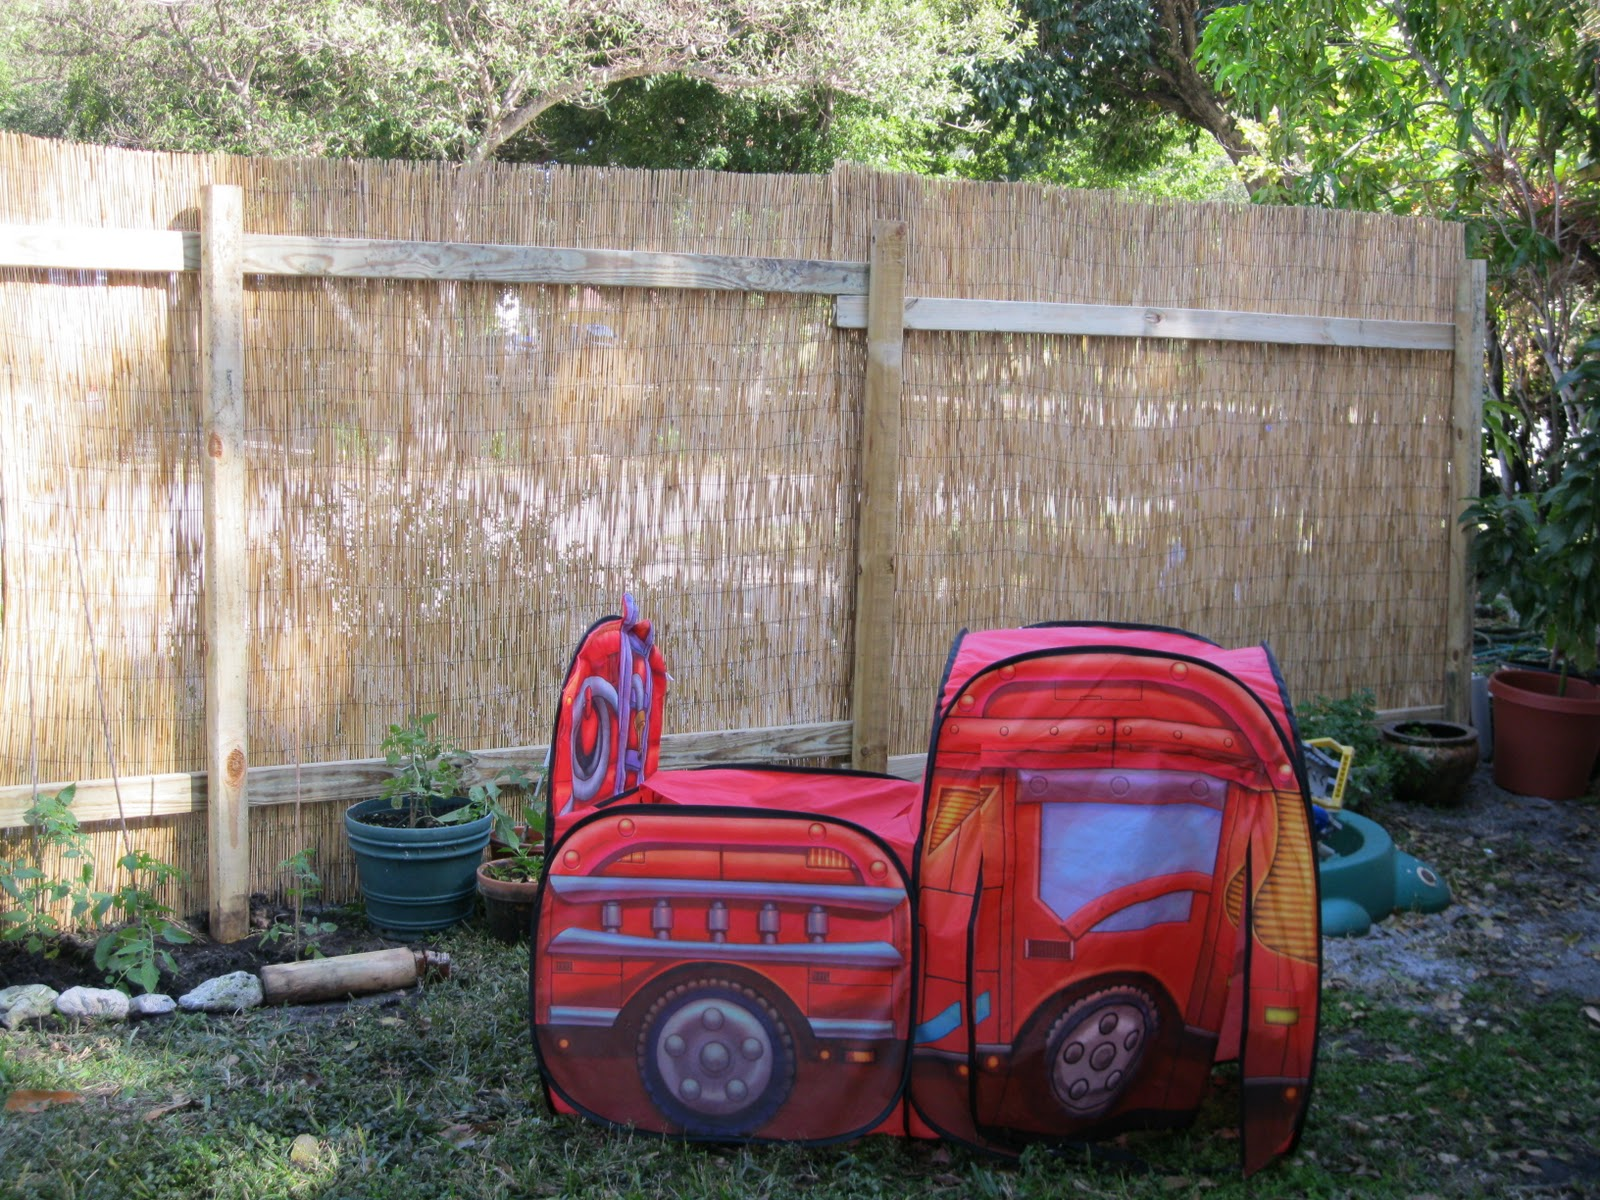 Backyard X-Scapes Reed Fence Review | Frugality Is Free